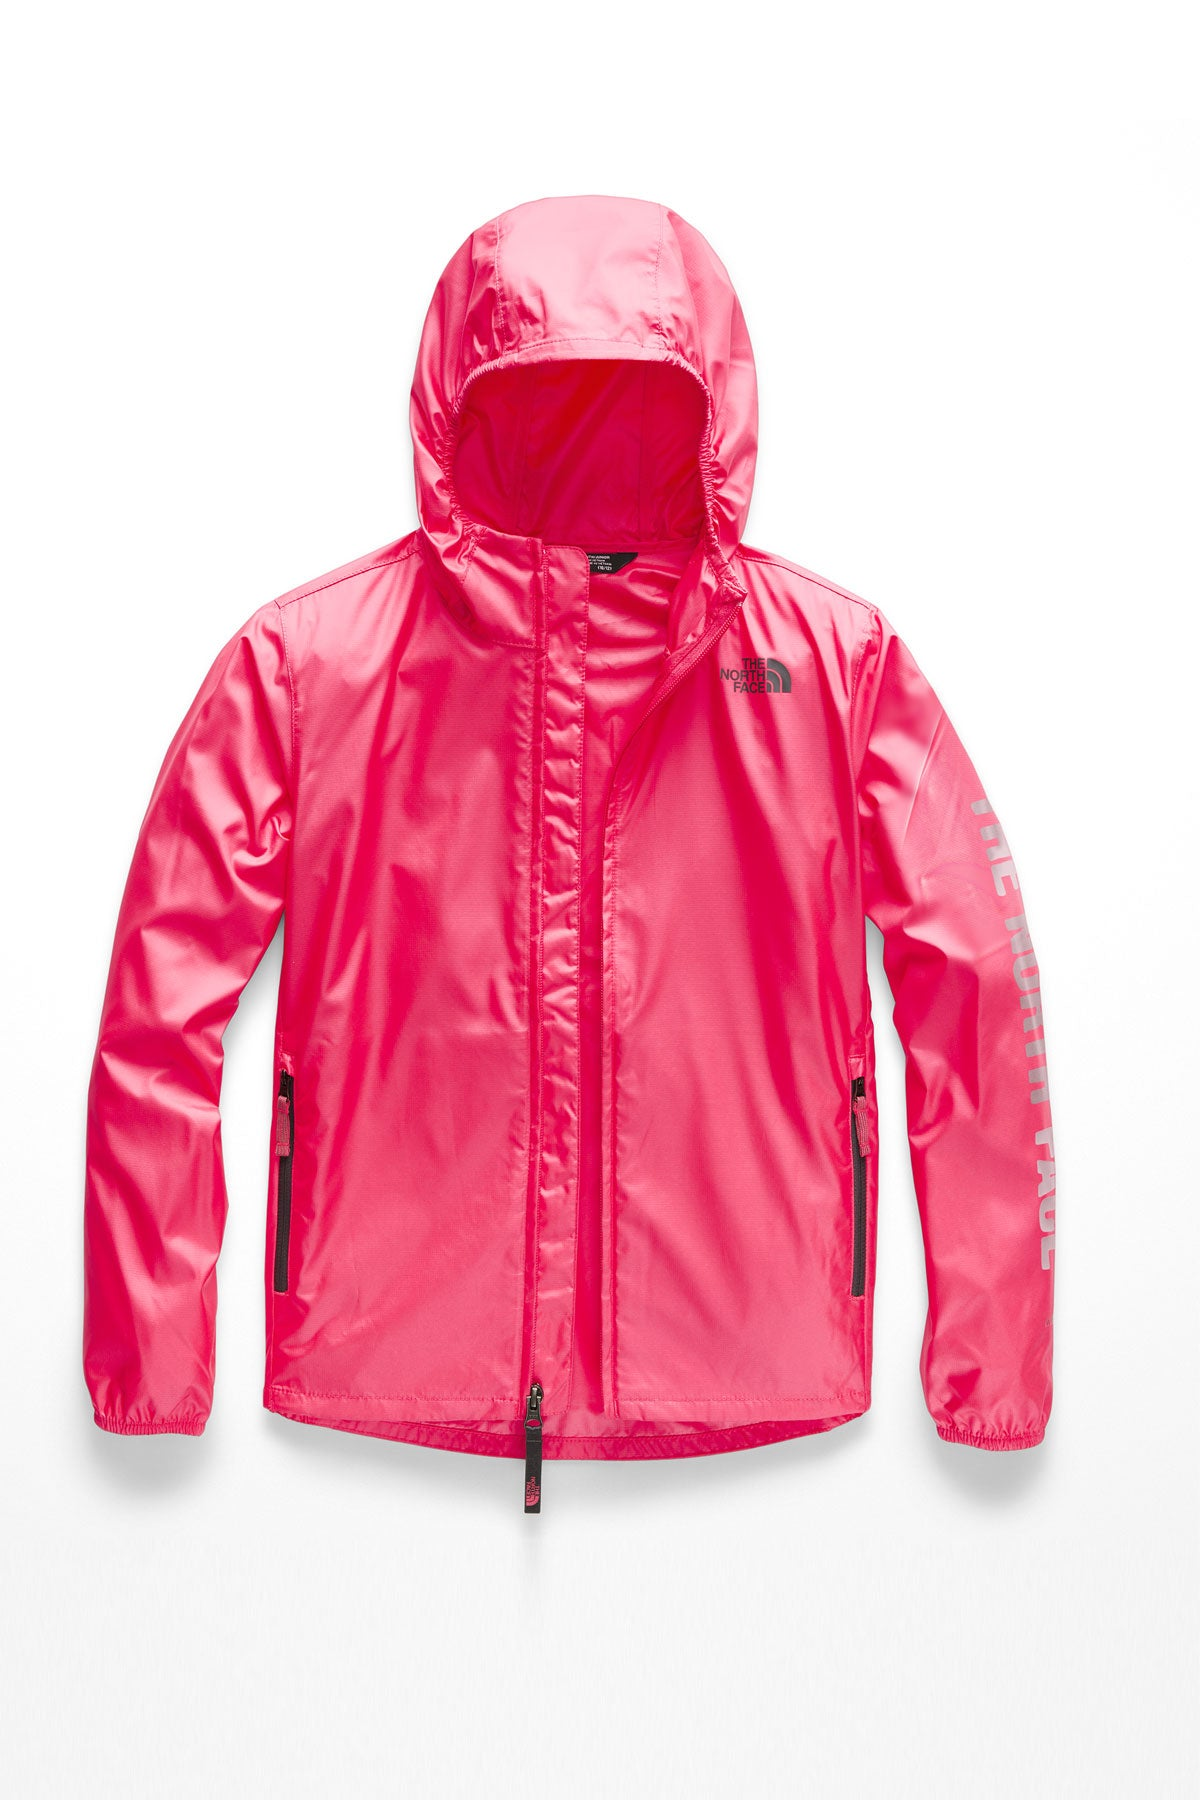 56f3d5ab6eec Outerwear